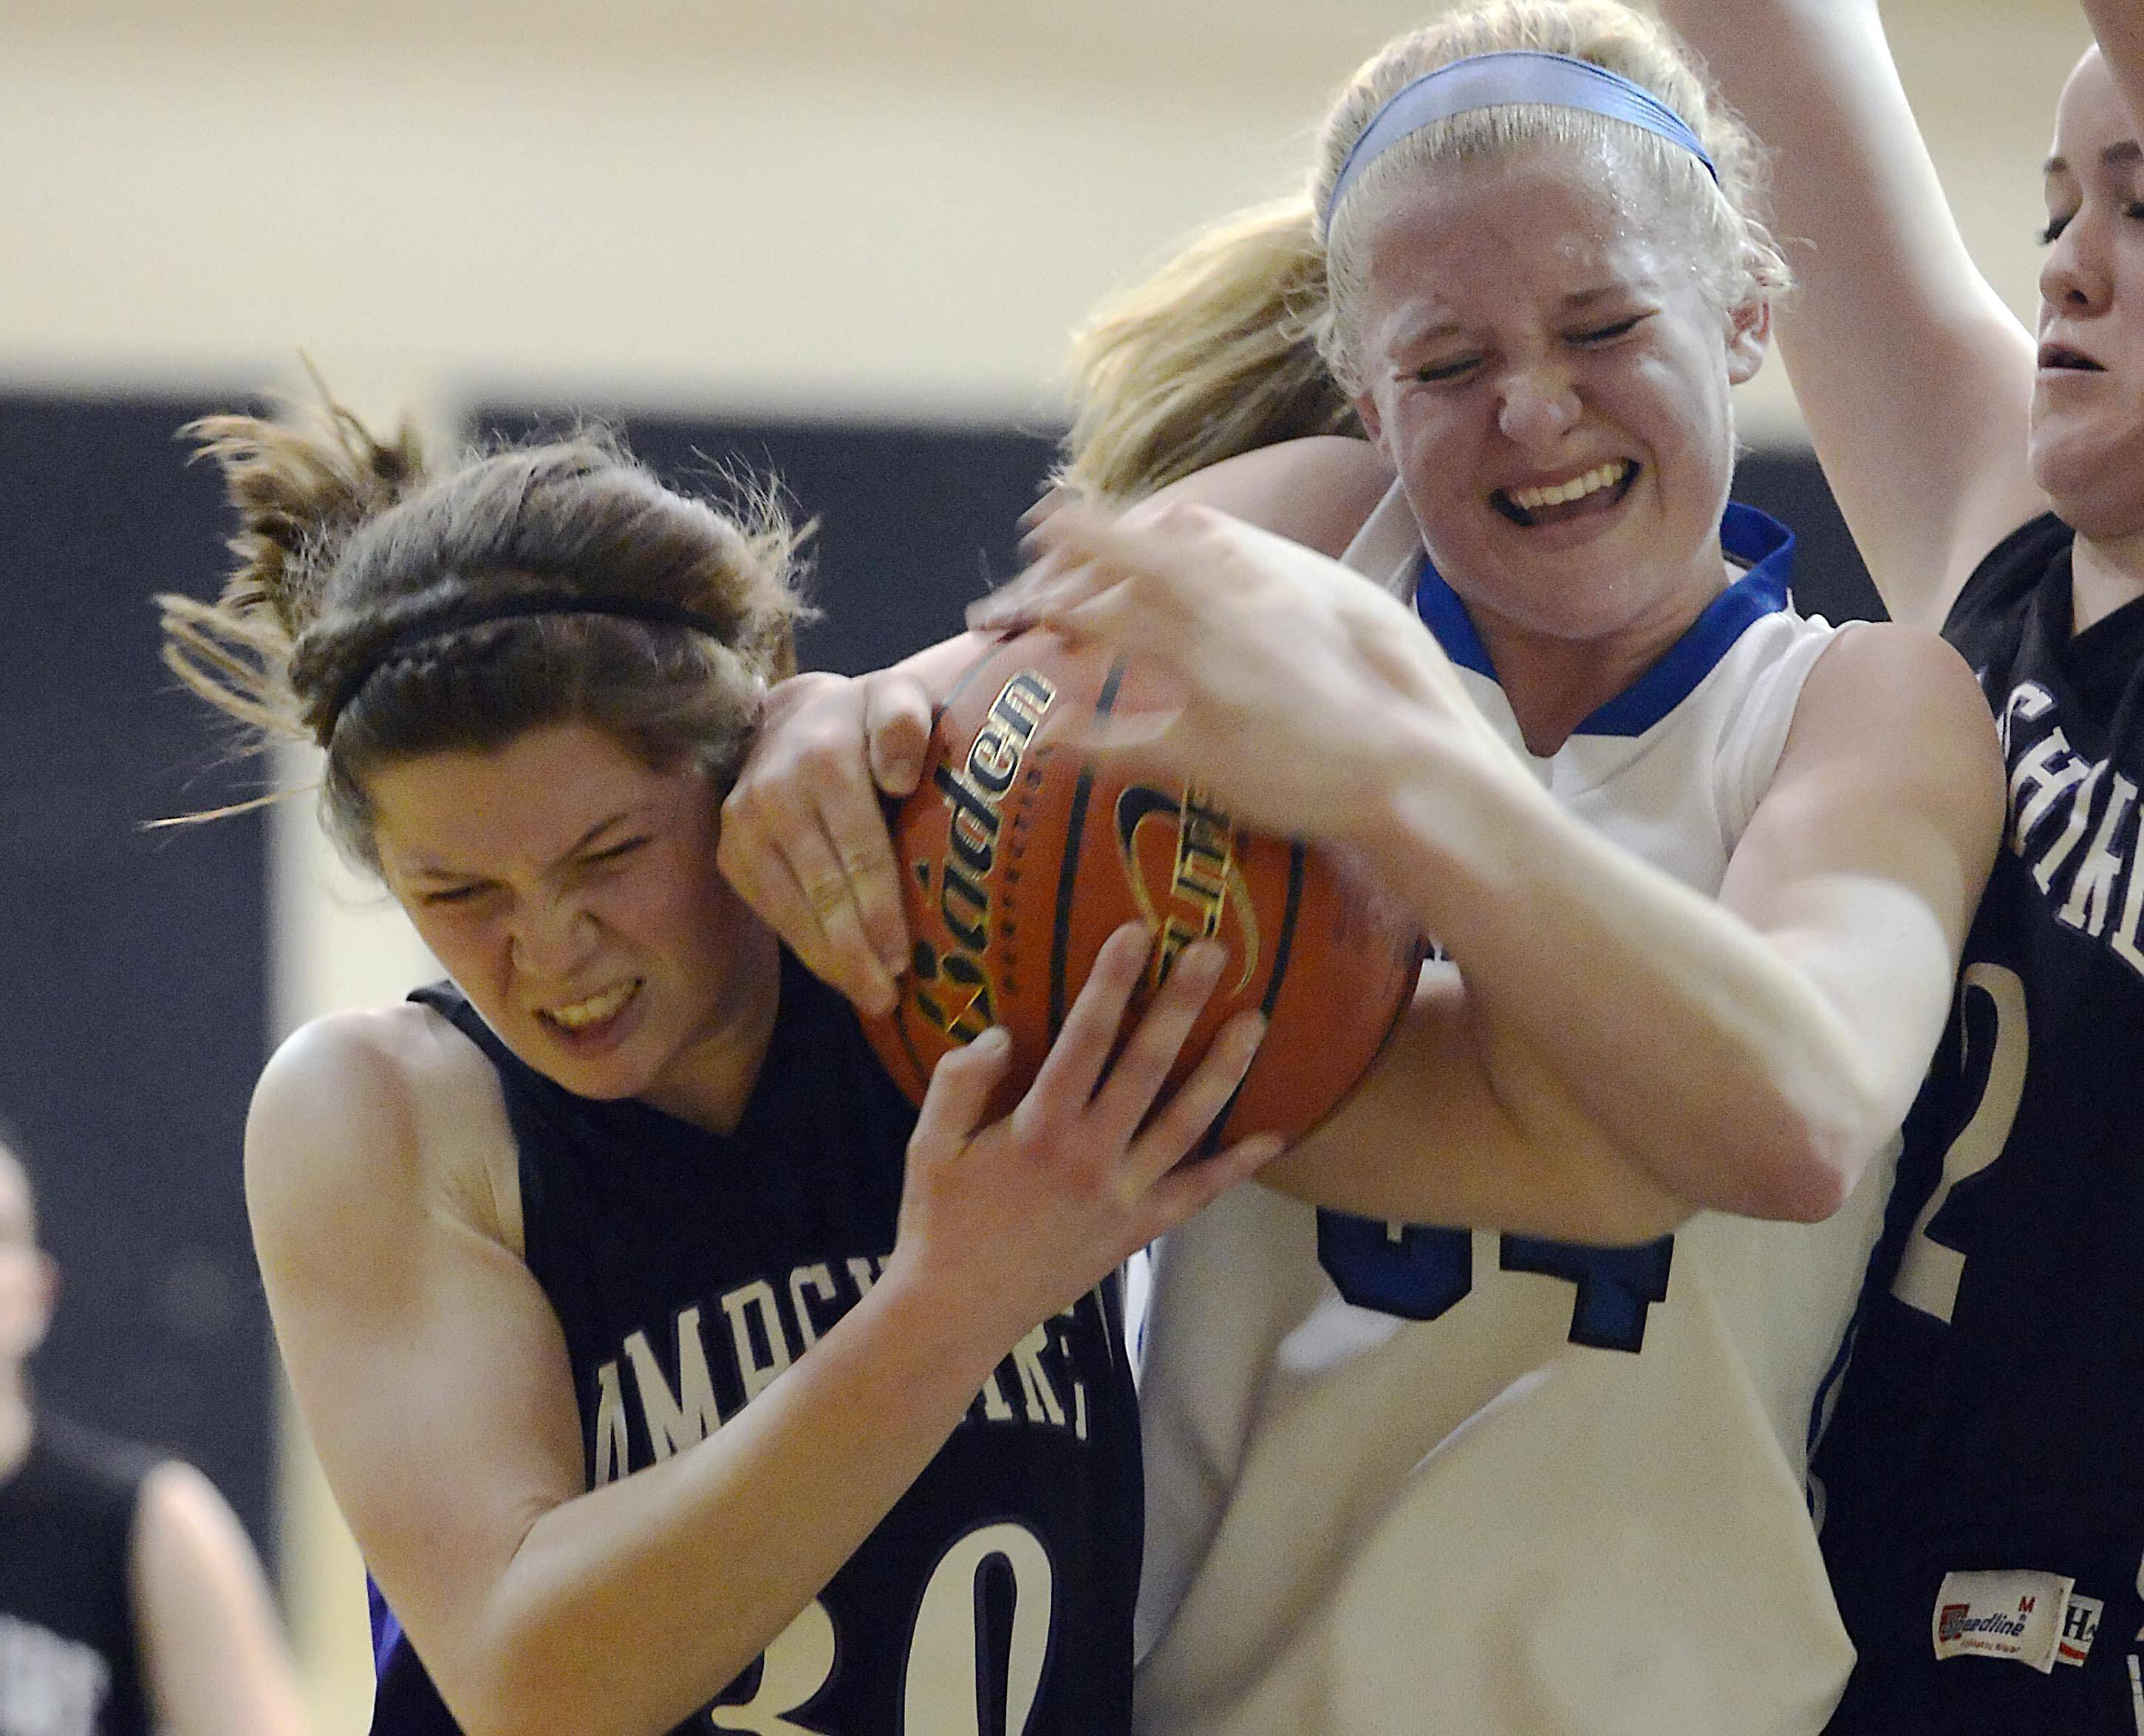 Burlington Central's Samantha Pryor and Hampshire's Tricia Dumoulin fight for the ball.